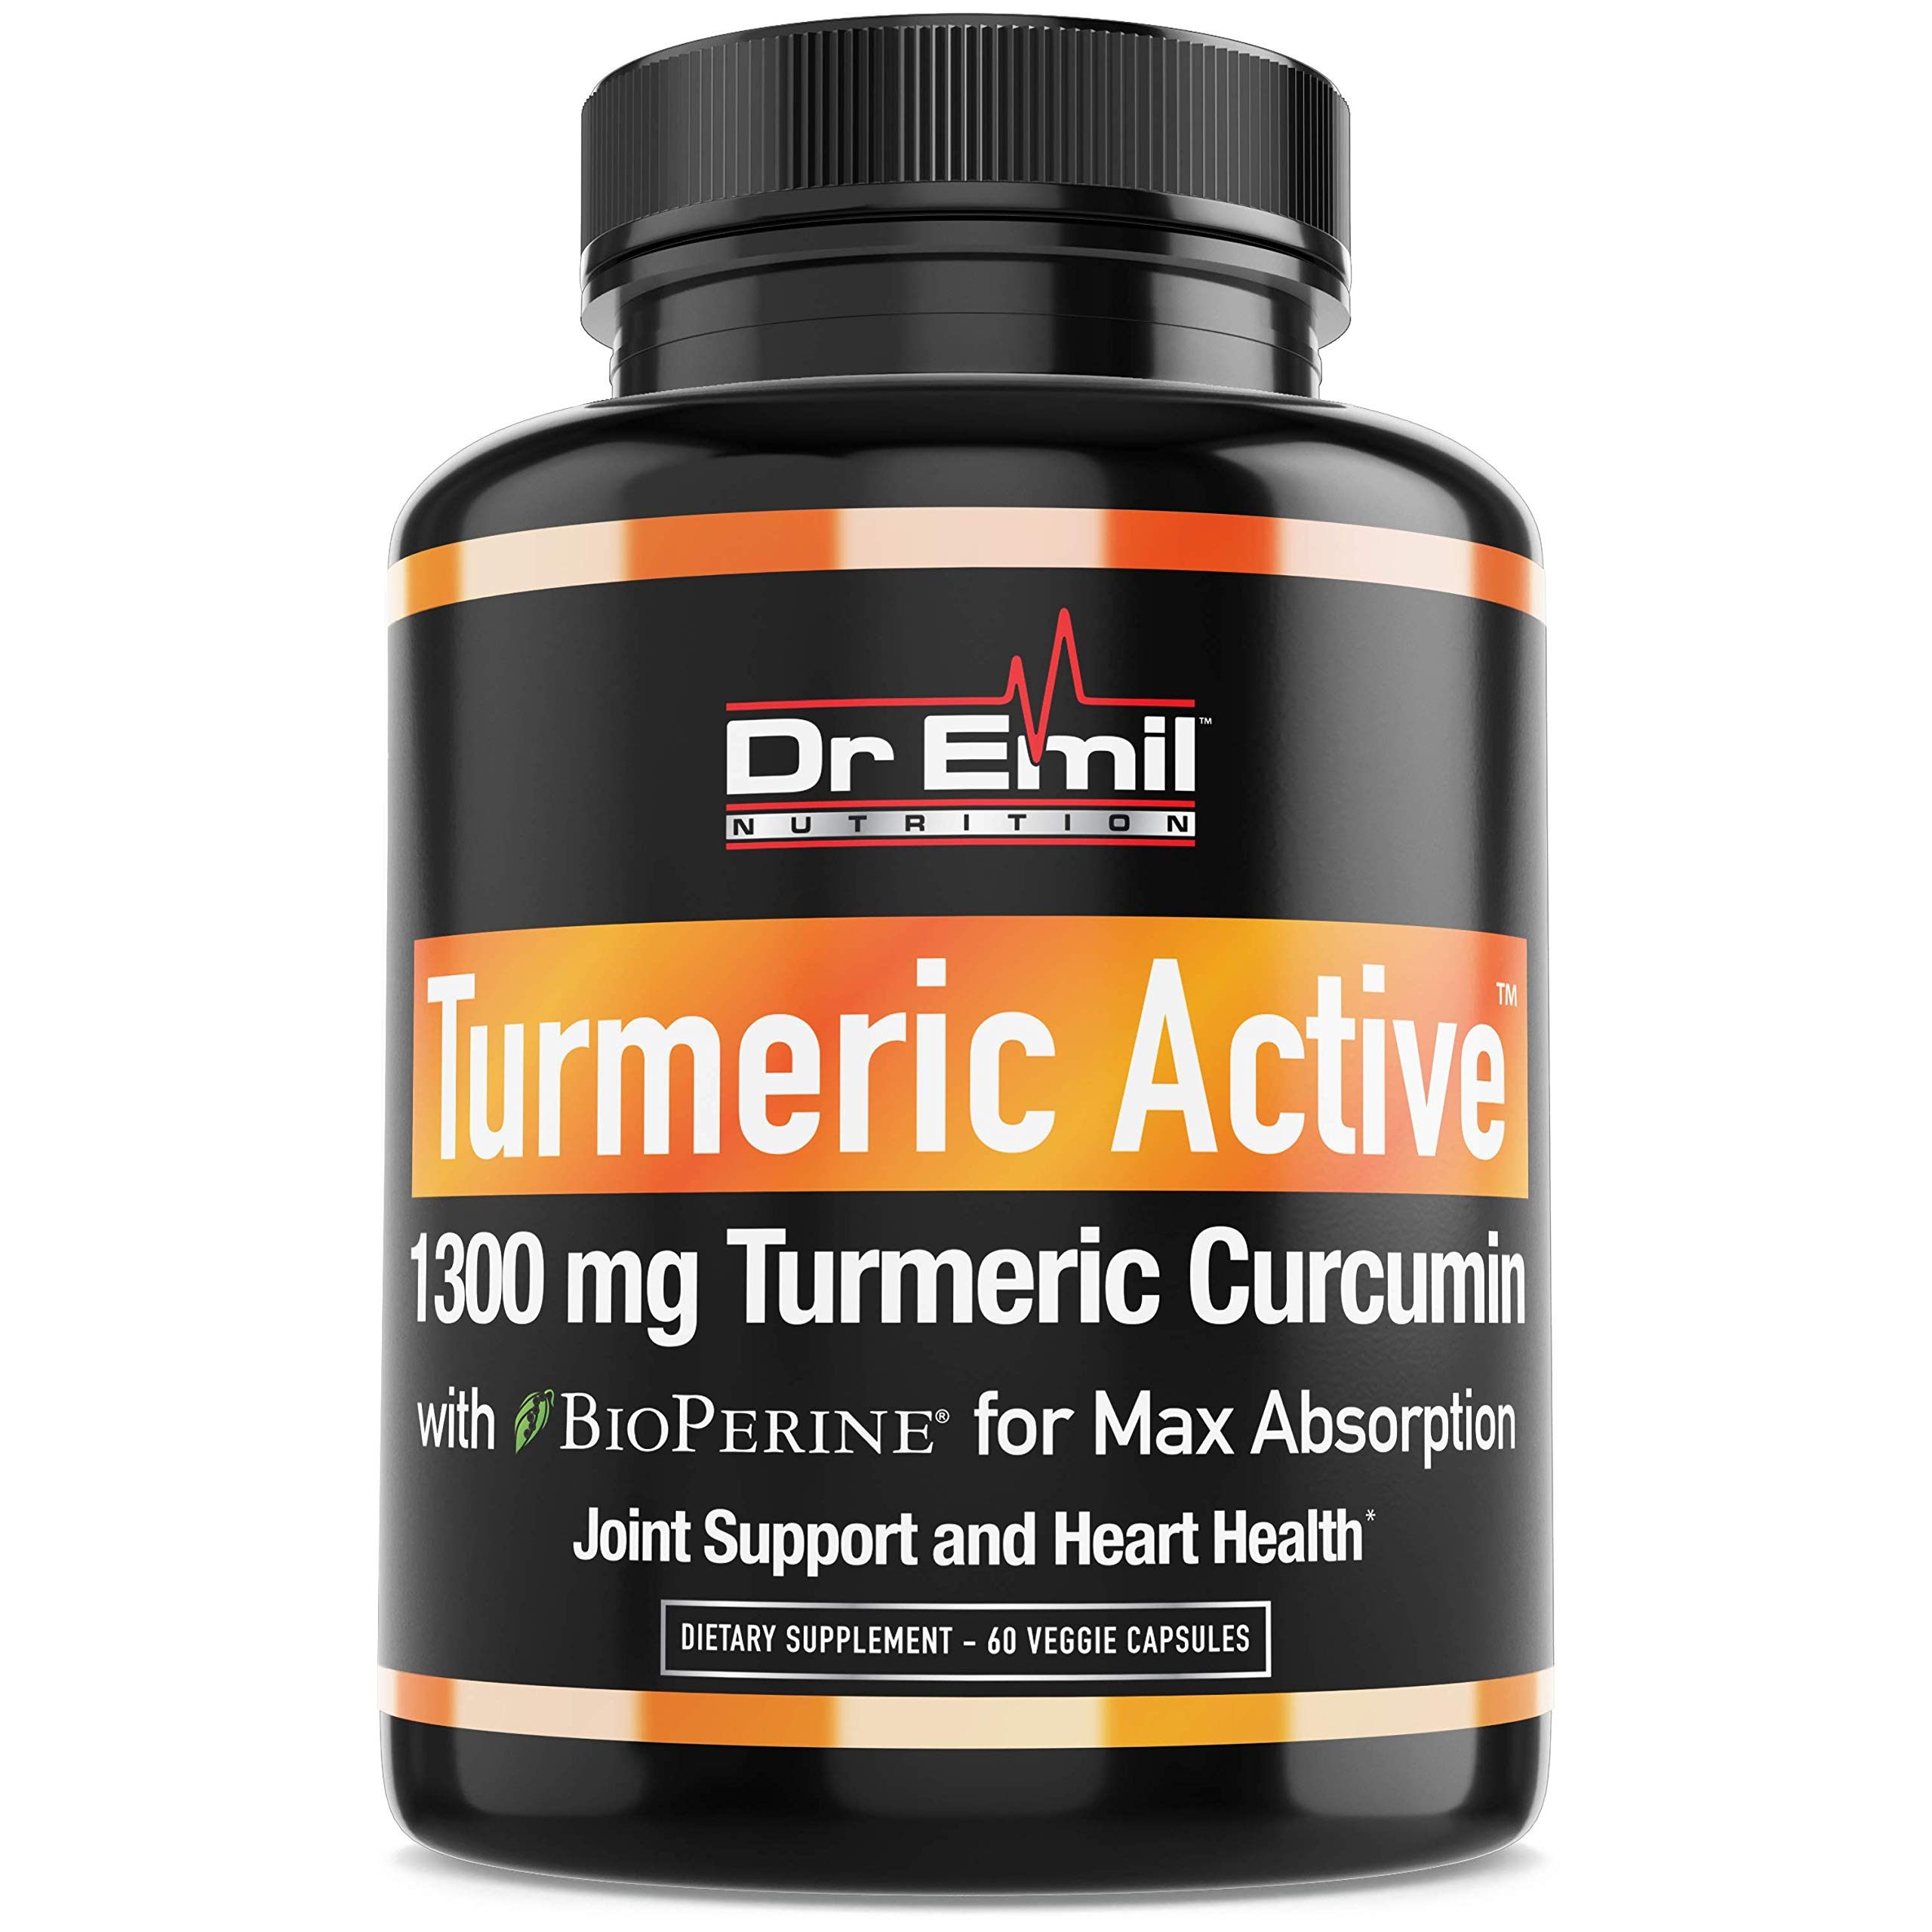 Cheap Organic Turmeric Curcumin with BioPerine (95% Curcuminoids - Max Potency) - Vegan Non-GMO Supplement for Joint Support Mobility and Pain Relief (60 Veggie Turmeric Capsules) Black Friday & Cyber Monday 2019